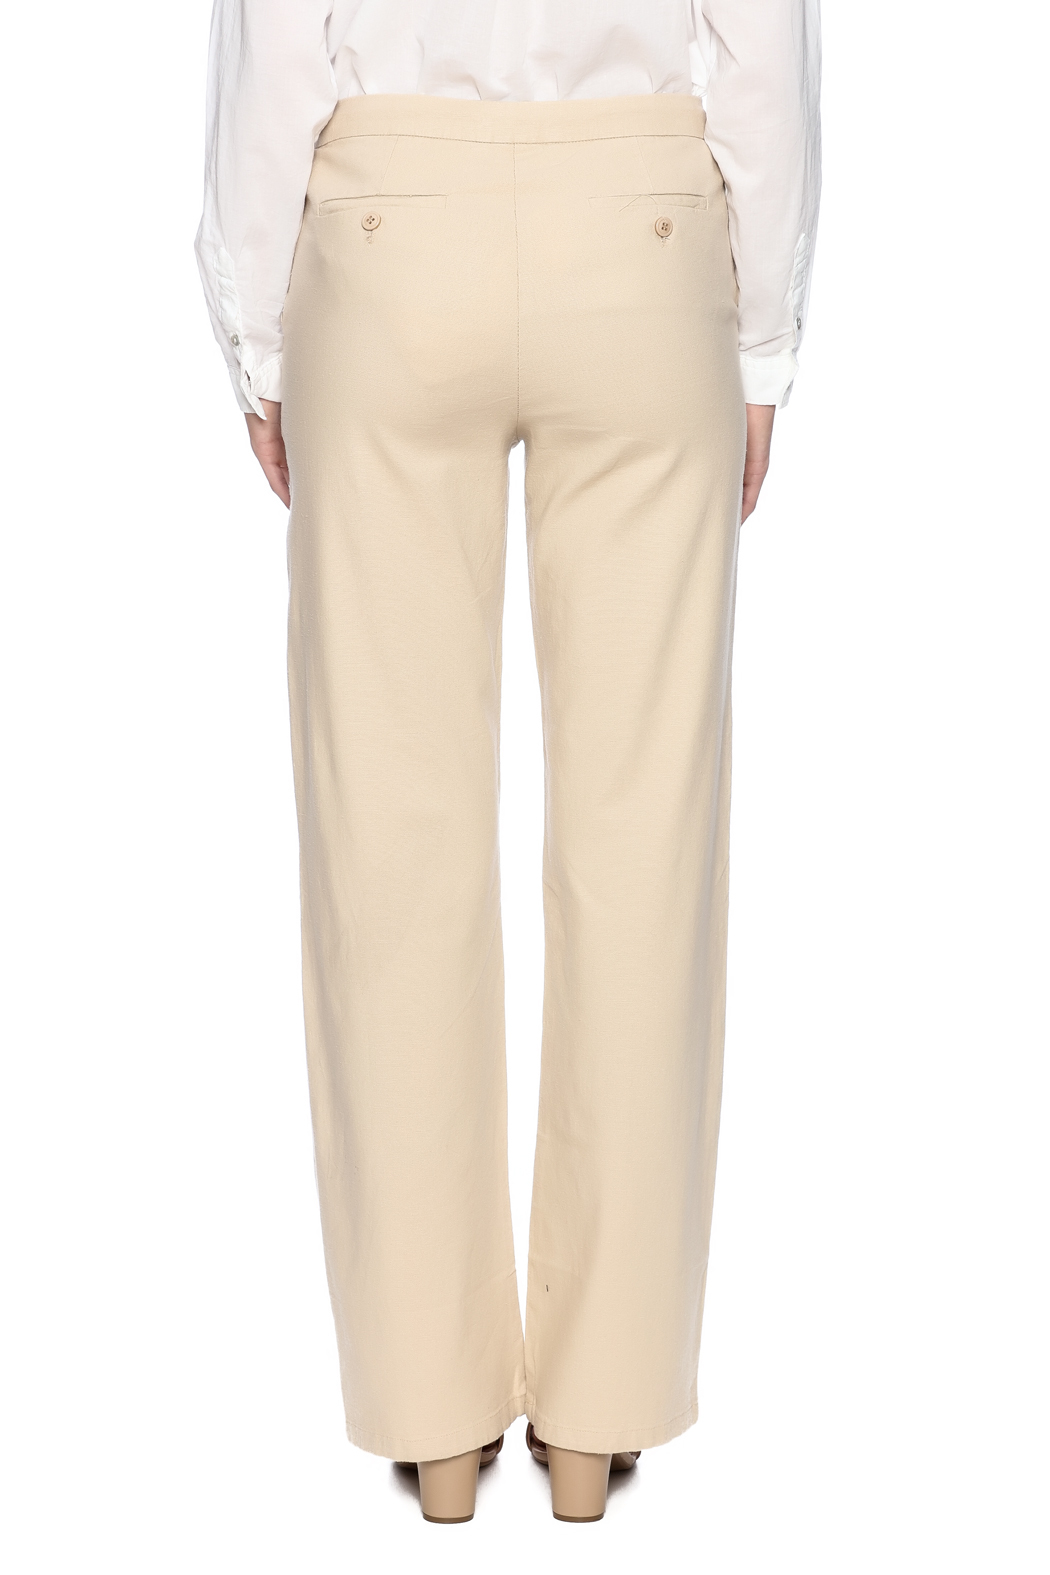 Bishop + Young Button Front Pants - Back Cropped Image